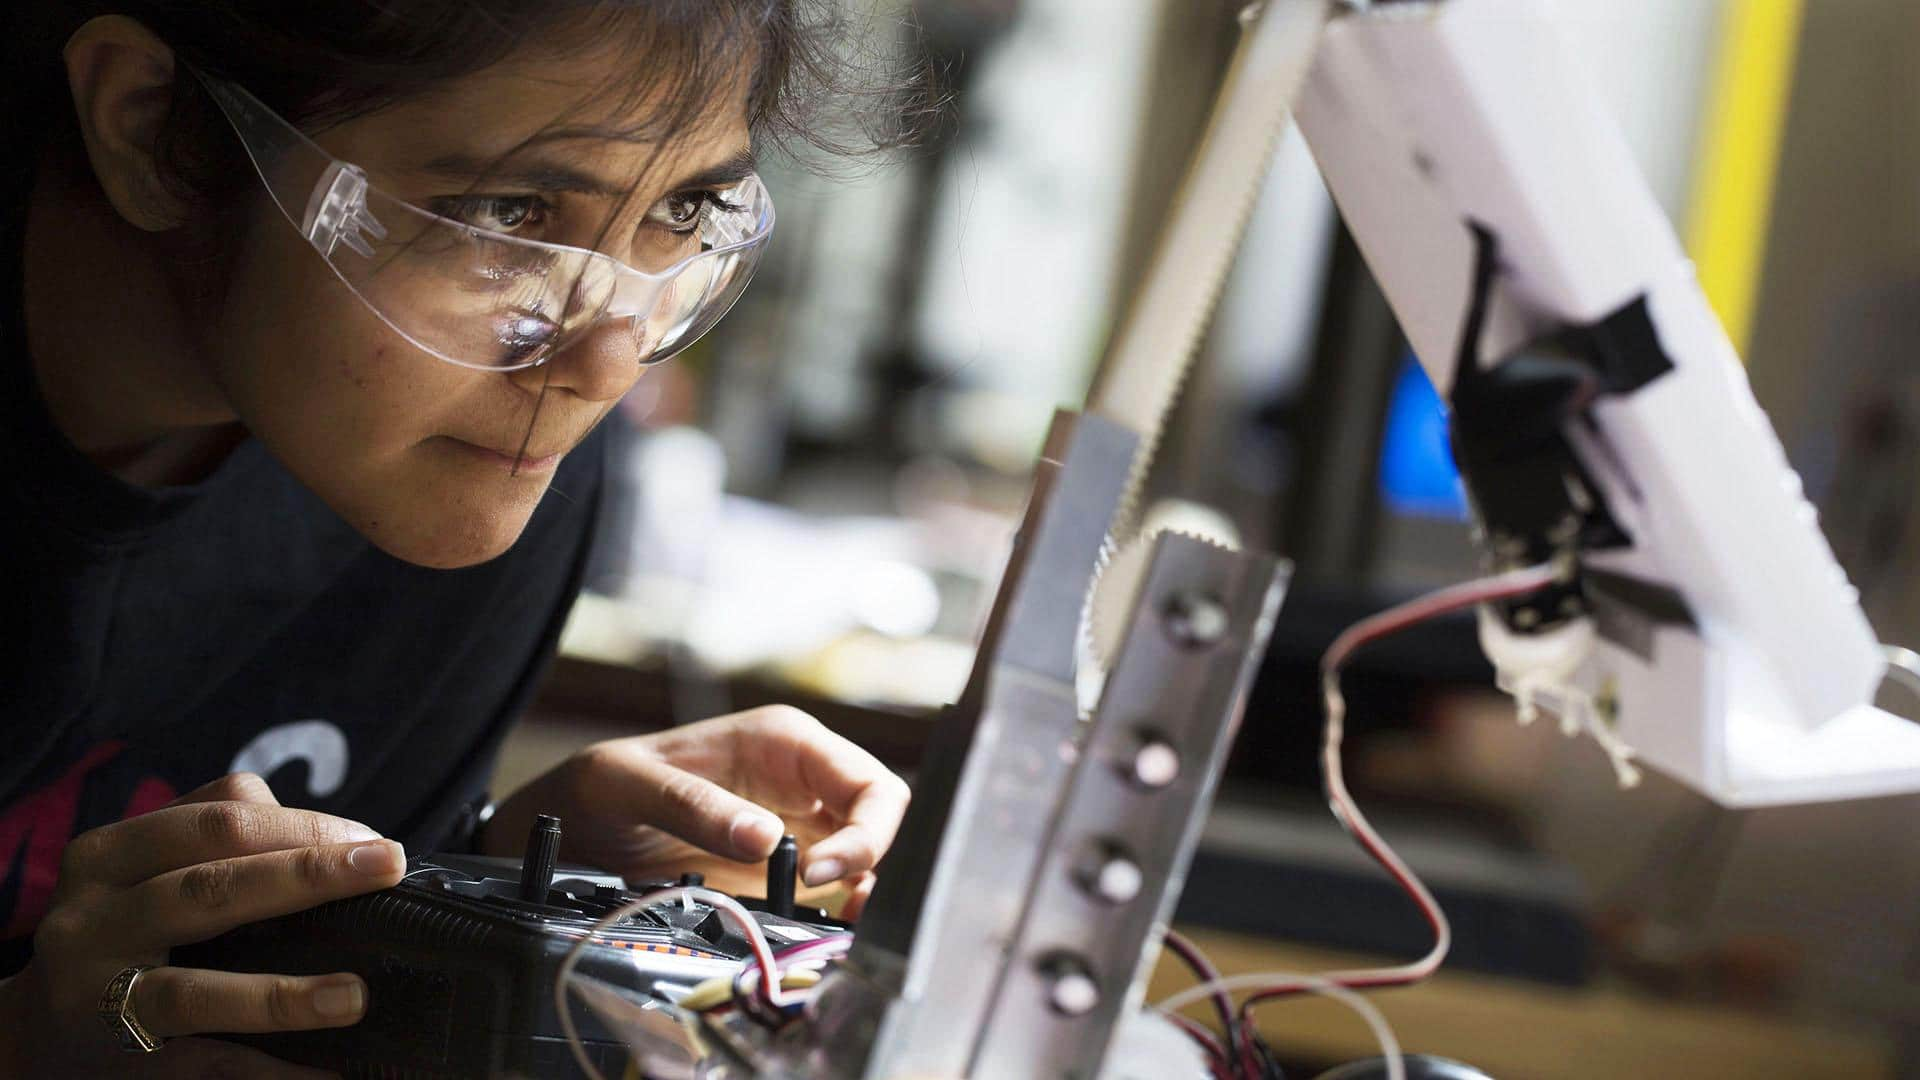 Ms In Automobile Engineering In Usa Masters In Automobile Engineering In Usa Study Automobile Engineering In Usa For Indian Students Gousa